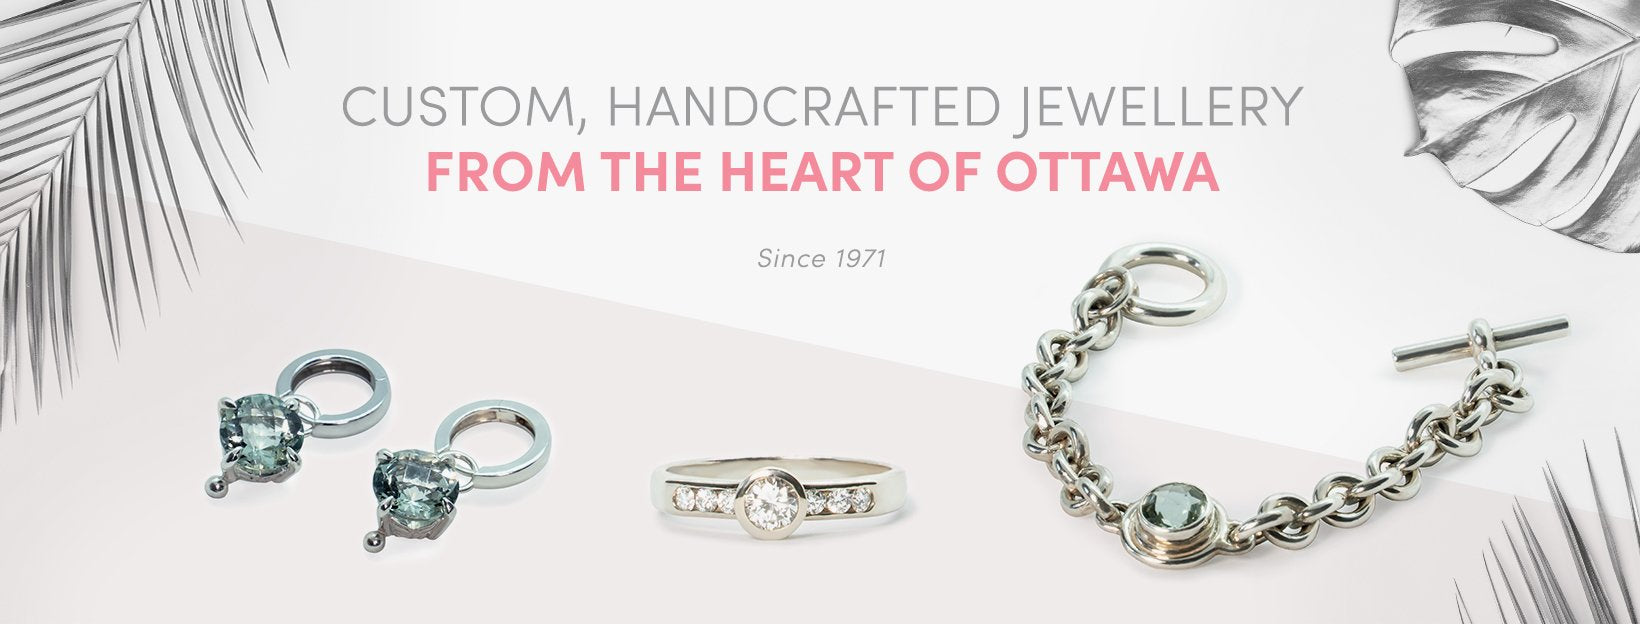 Custom Handcrafted Jewellery From The Heart of Ottawa